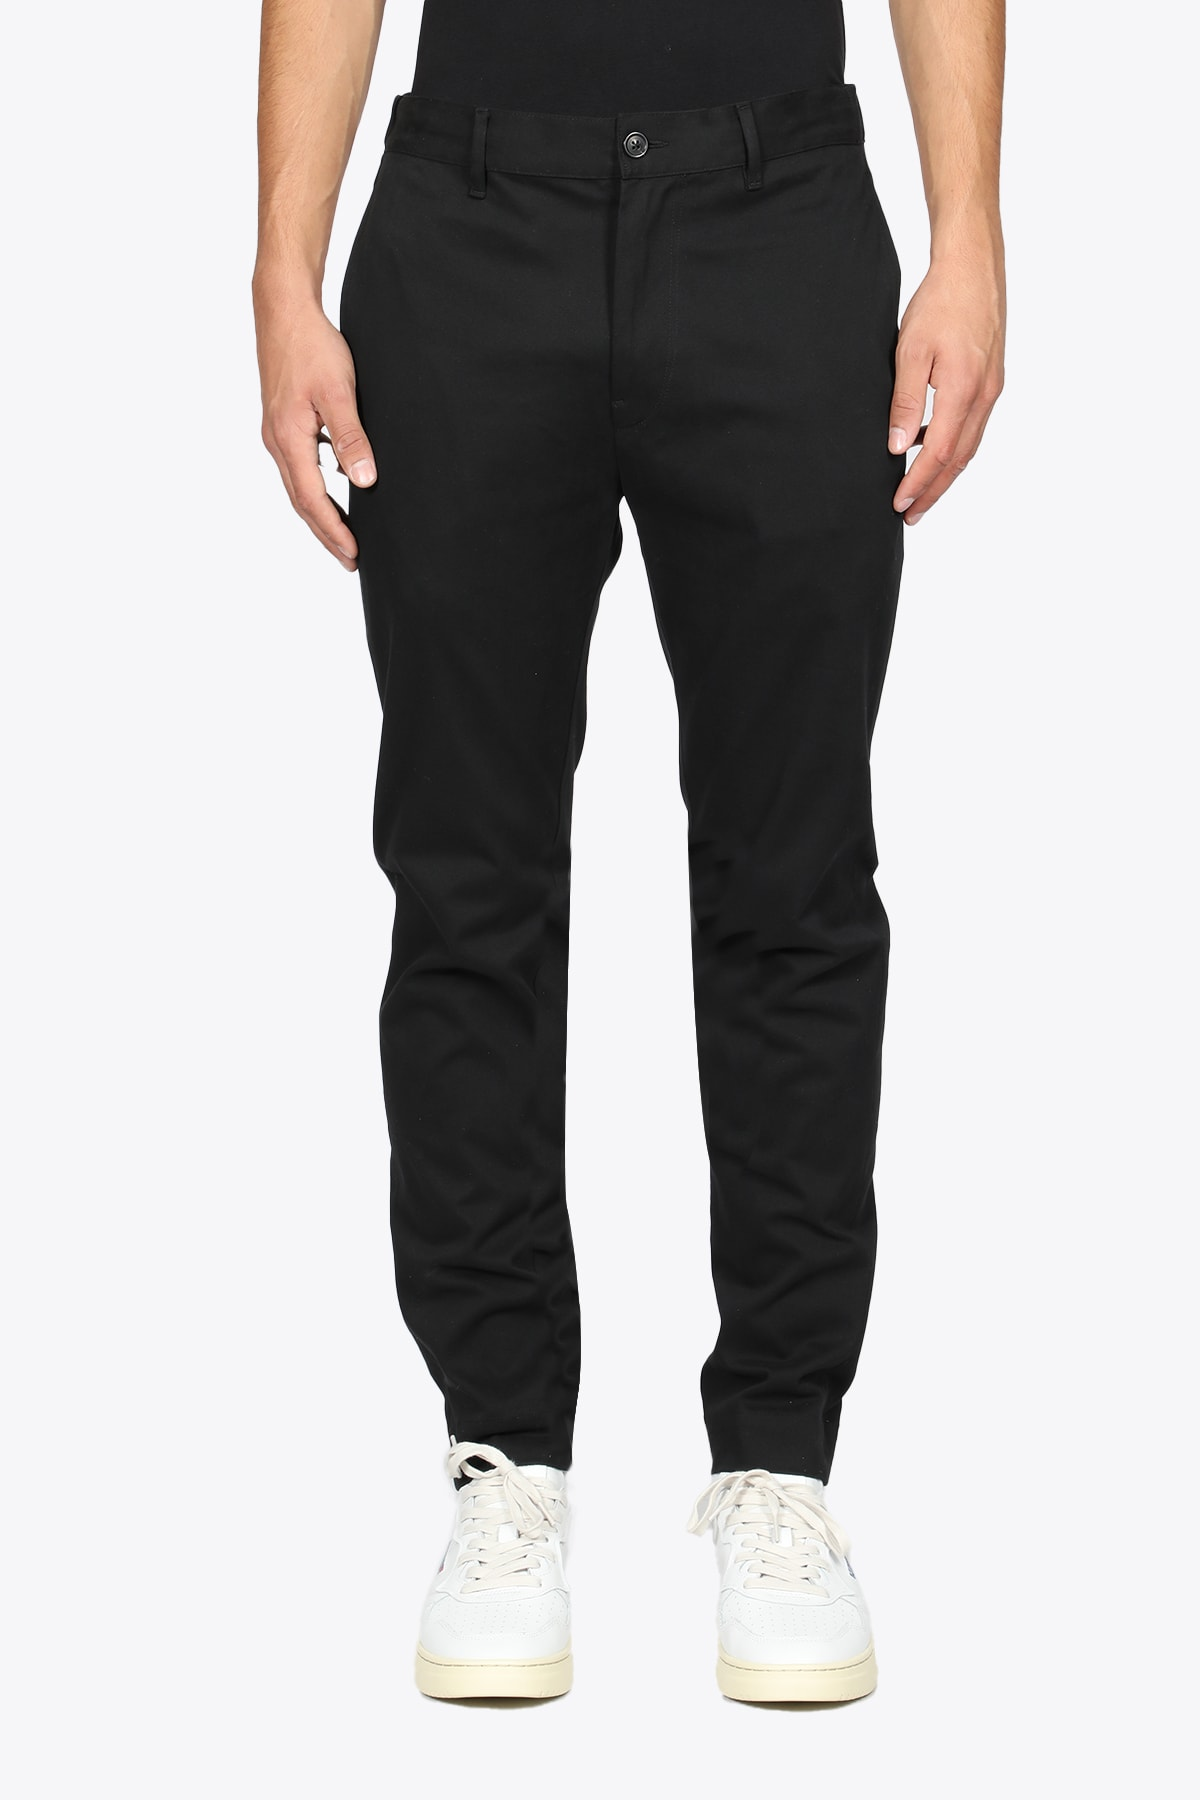 Black Cotton Slim Fit Pant With Inner Drawstring